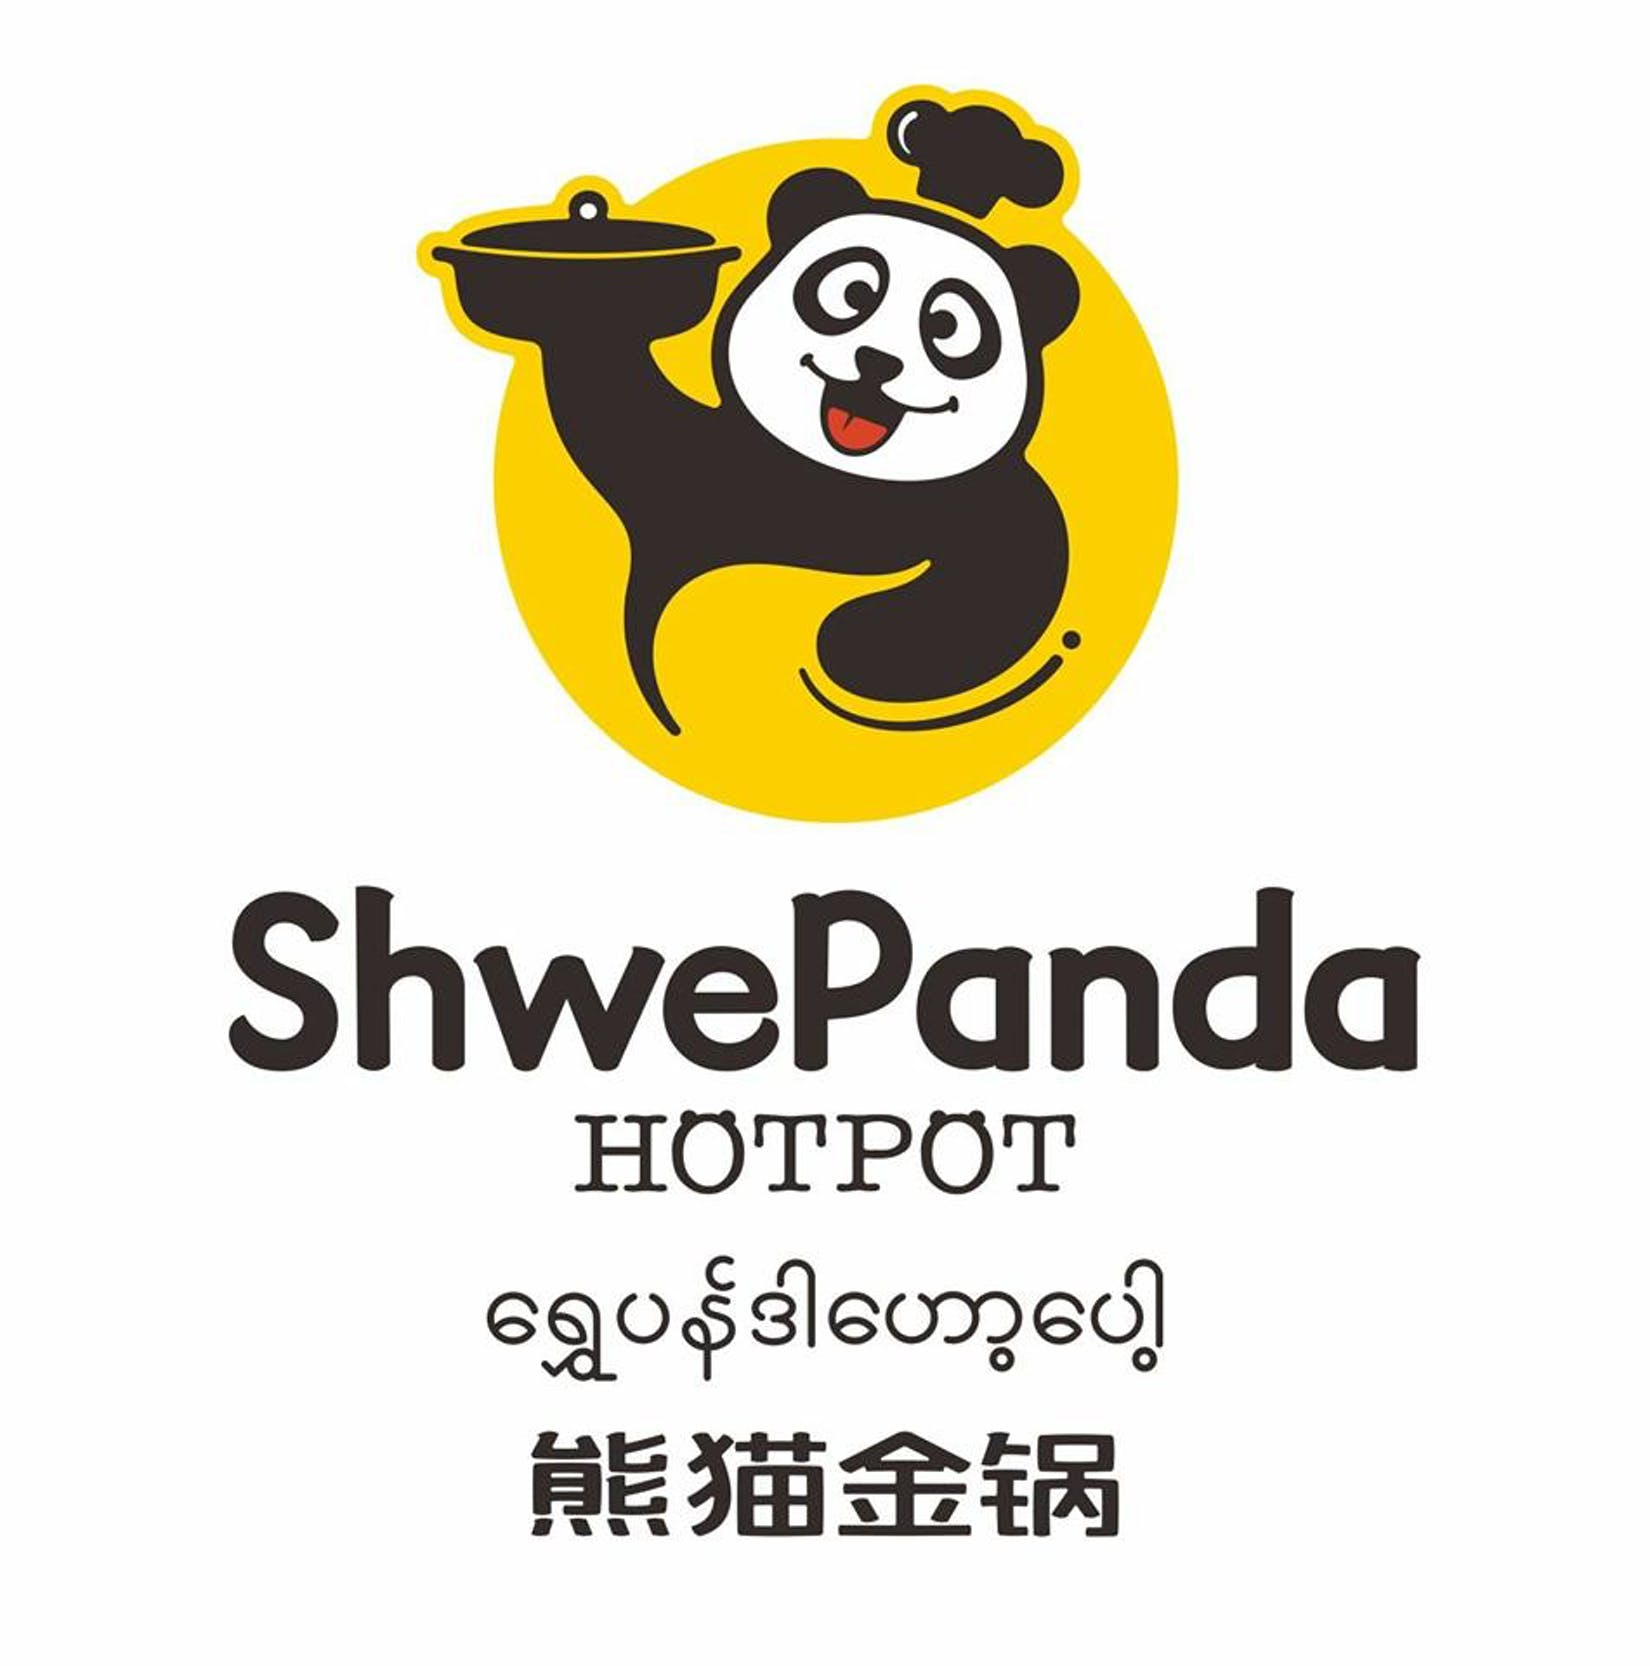 Shwe Panda Hot Pot | yathar